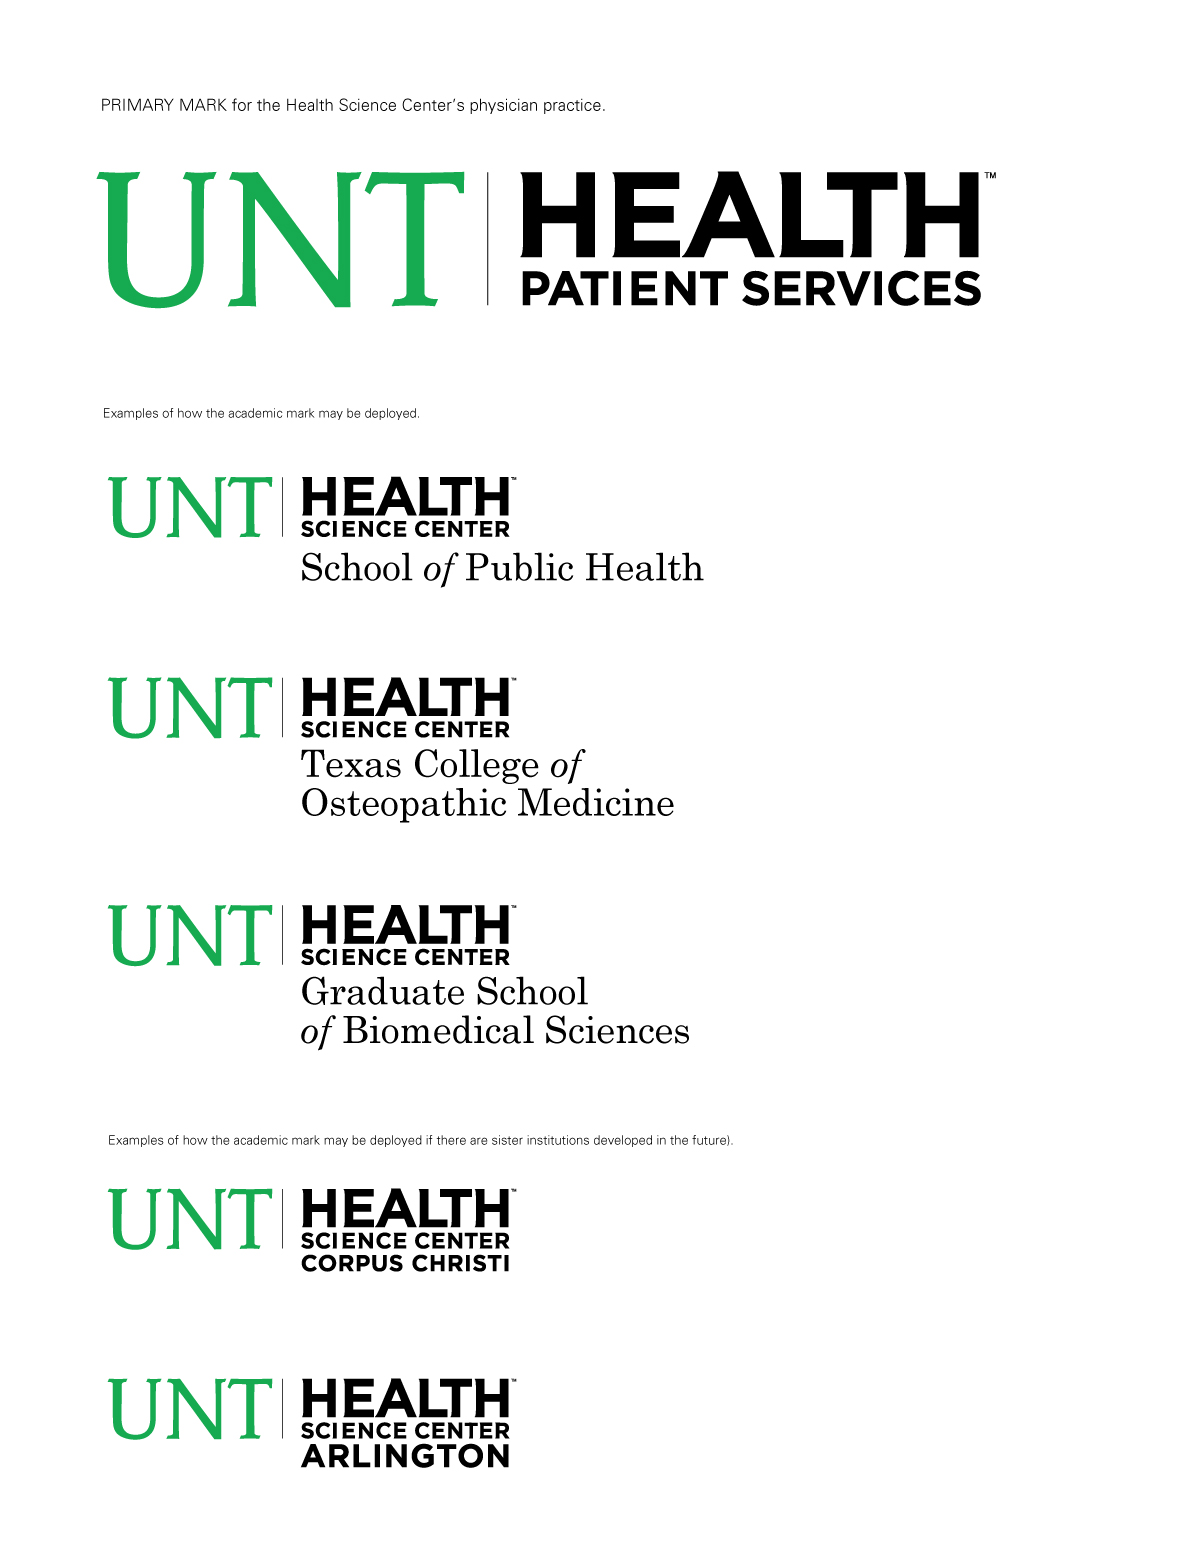 Ligon Owens Design Was Contorted To Redesign The Brand Identity And Develop A New Color Strategy Help UNT